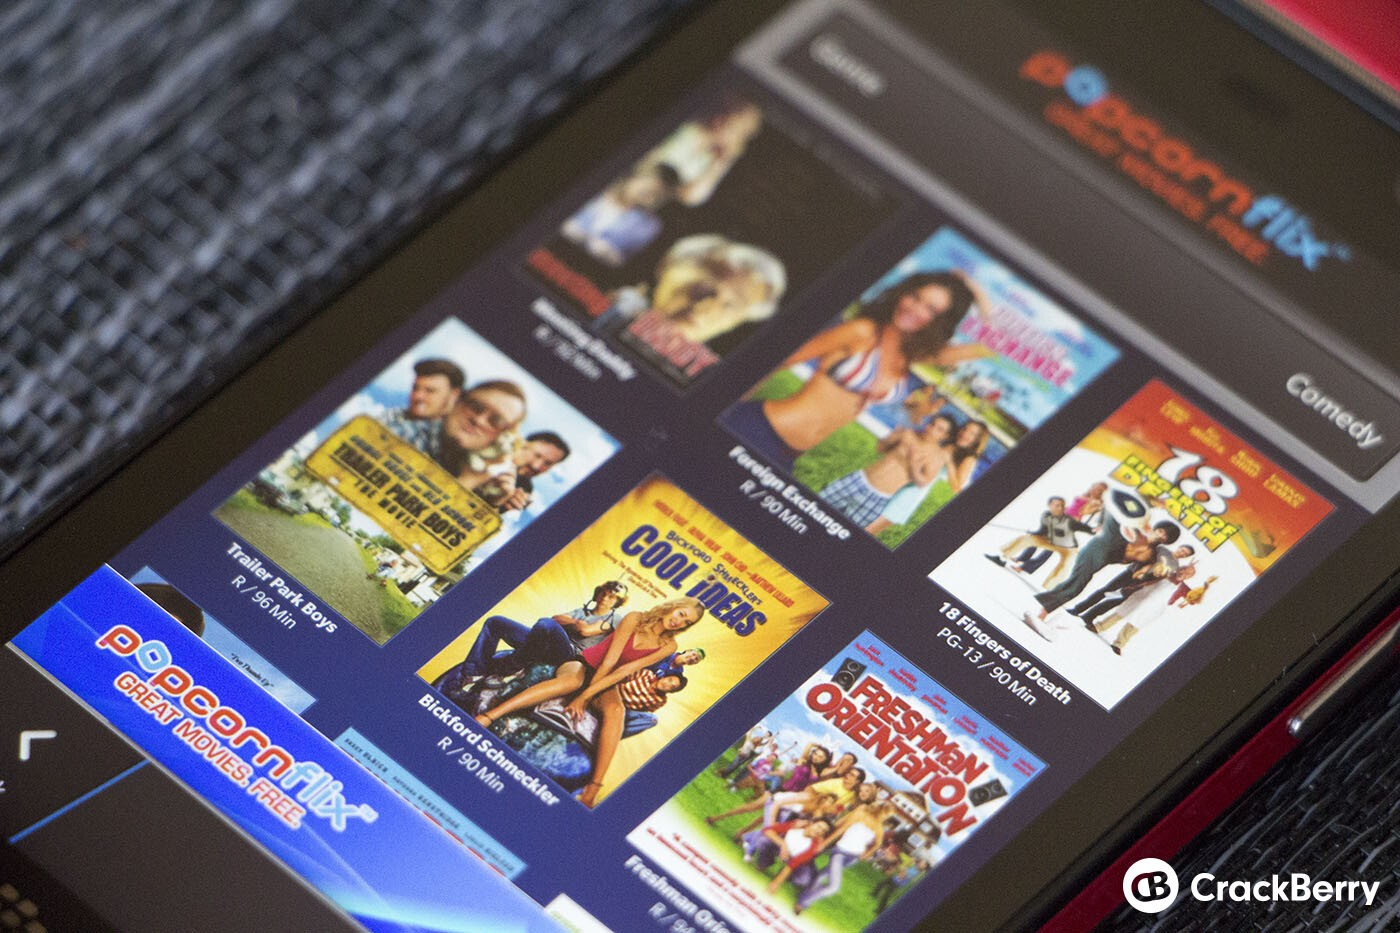 how to watch movies on your phone for free